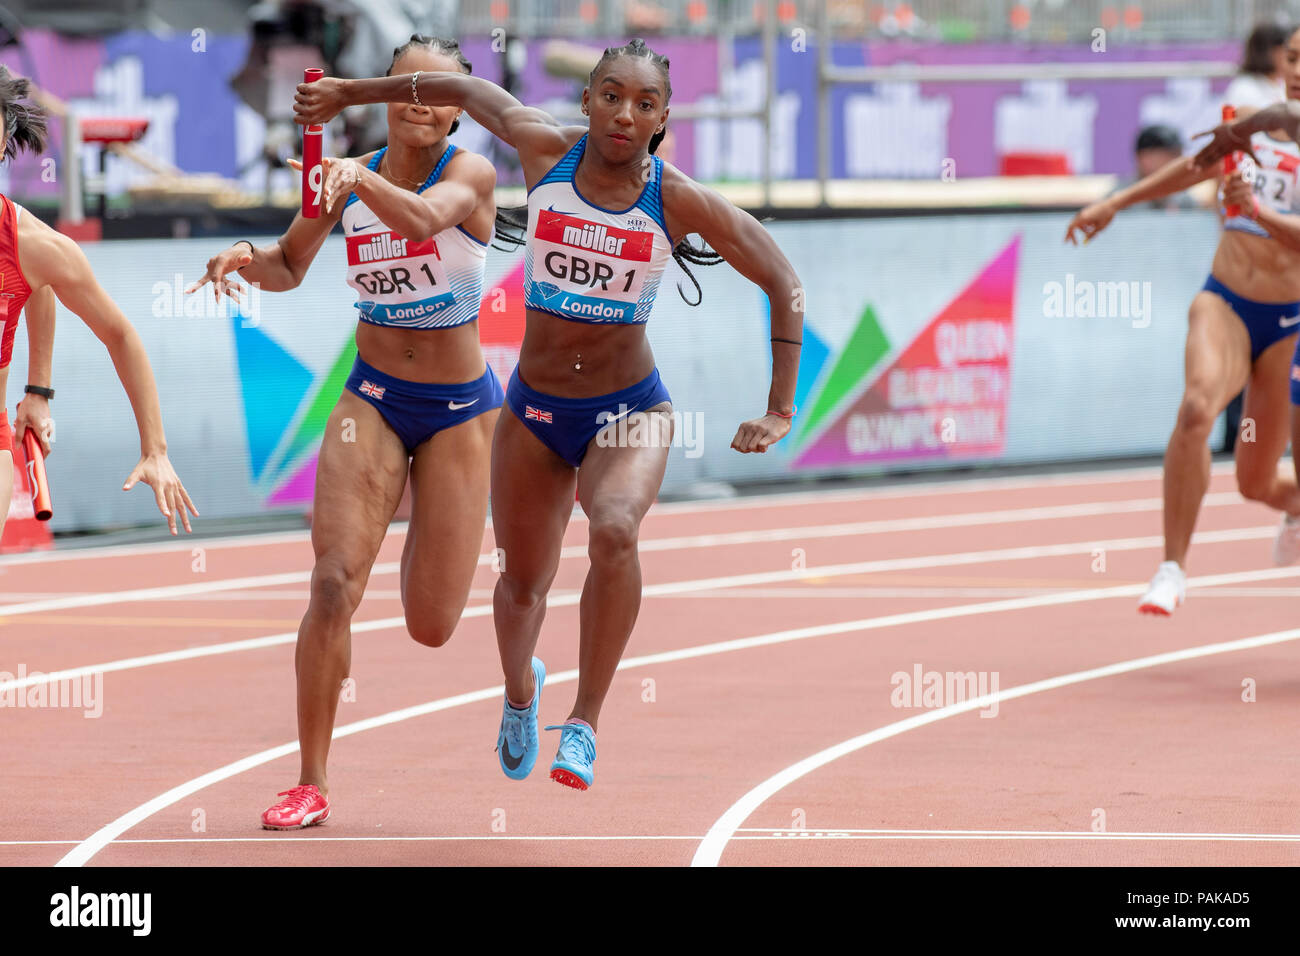 London, UK. 22nd July 2018. Bianca Williams (GBR) takes the baton from Imani Lansiquot (GBR) in the 4x100m at the Muller Anniversary Games at the London Stadium, London, Great Britiain, on 22 July 2018. Credit: Andrew Peat/Alamy Live News - Stock Image